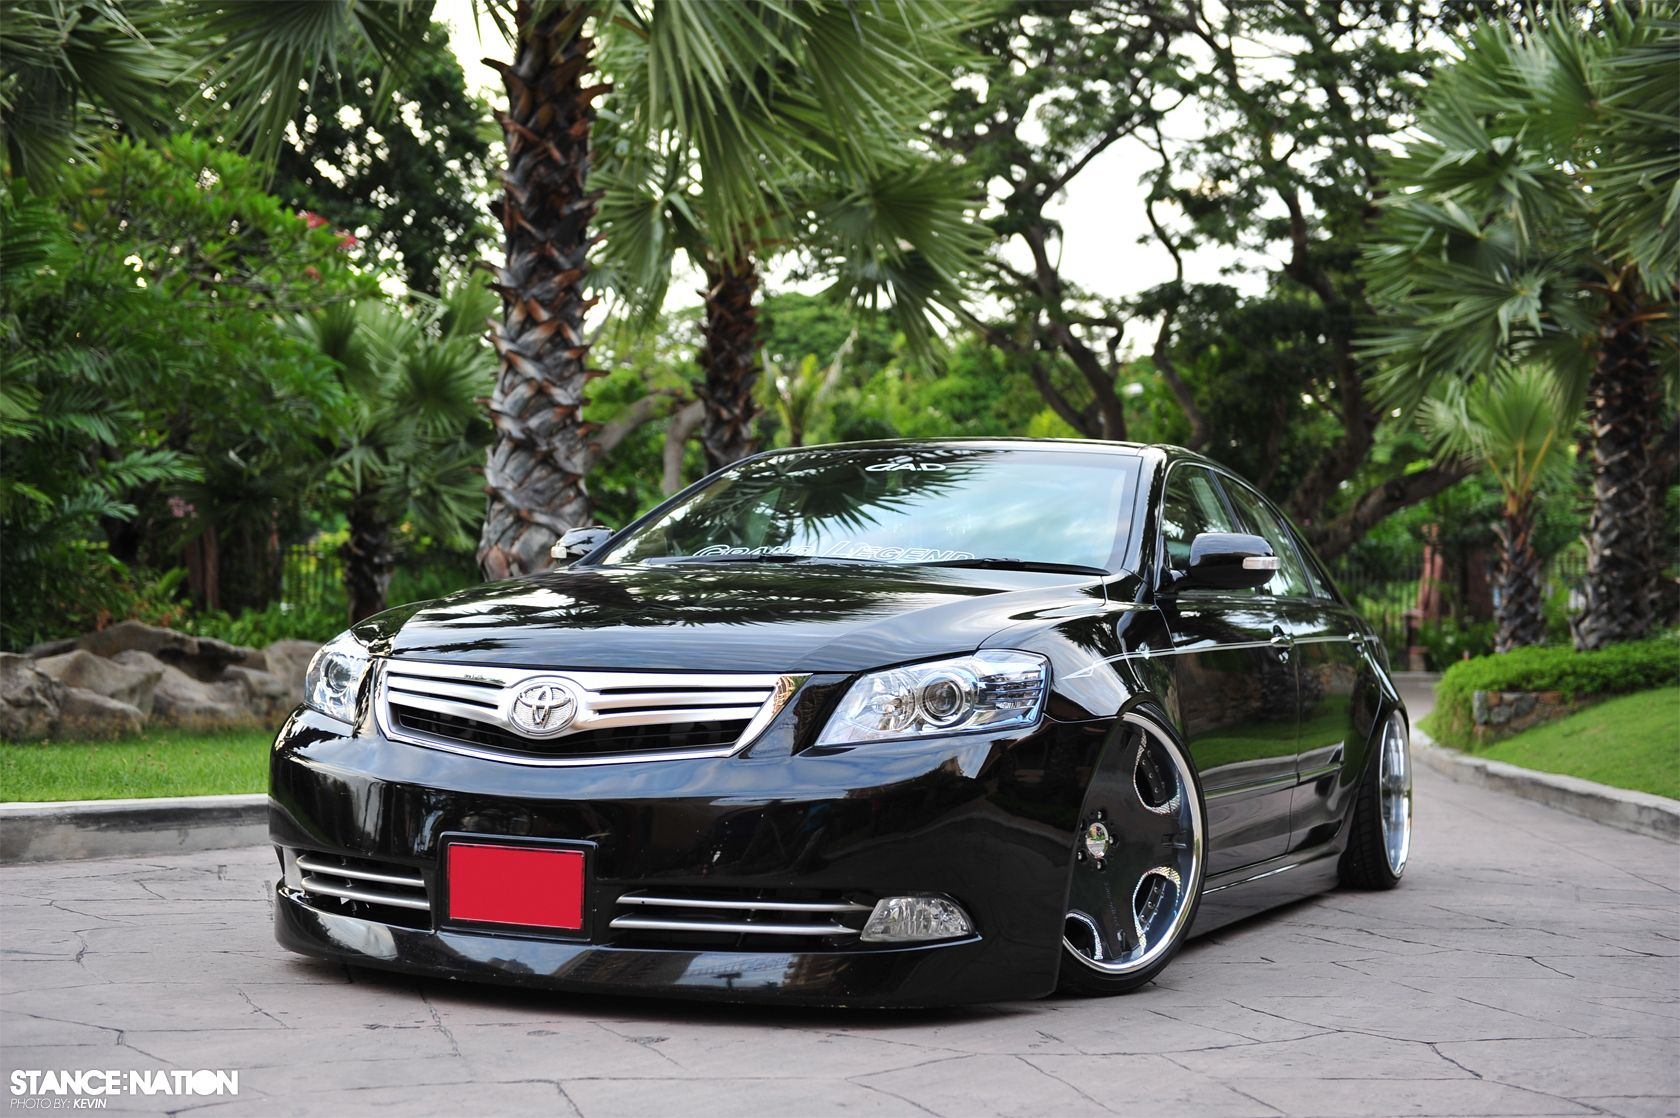 Toyota camry vip style stanced